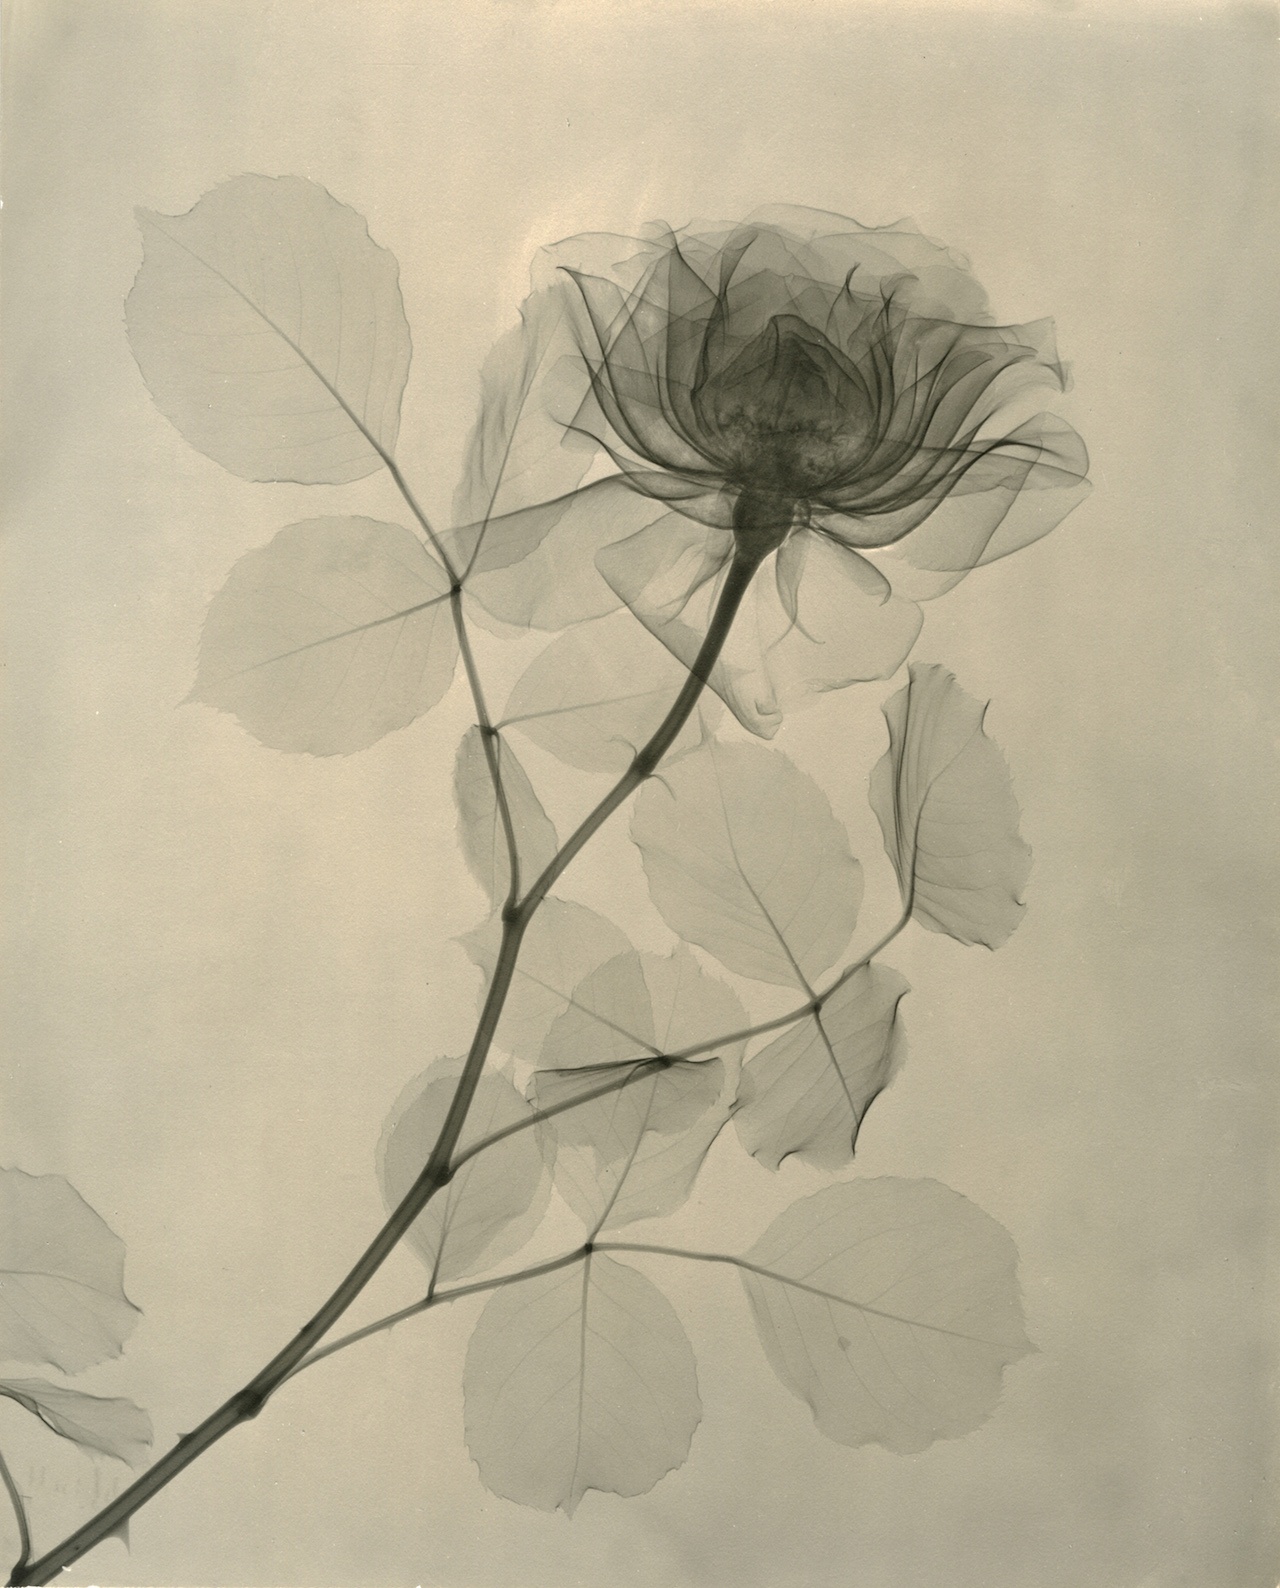 Xray Flower Prints A Radiologist 39s X Ray Photographs Of Flowers From The 1930s